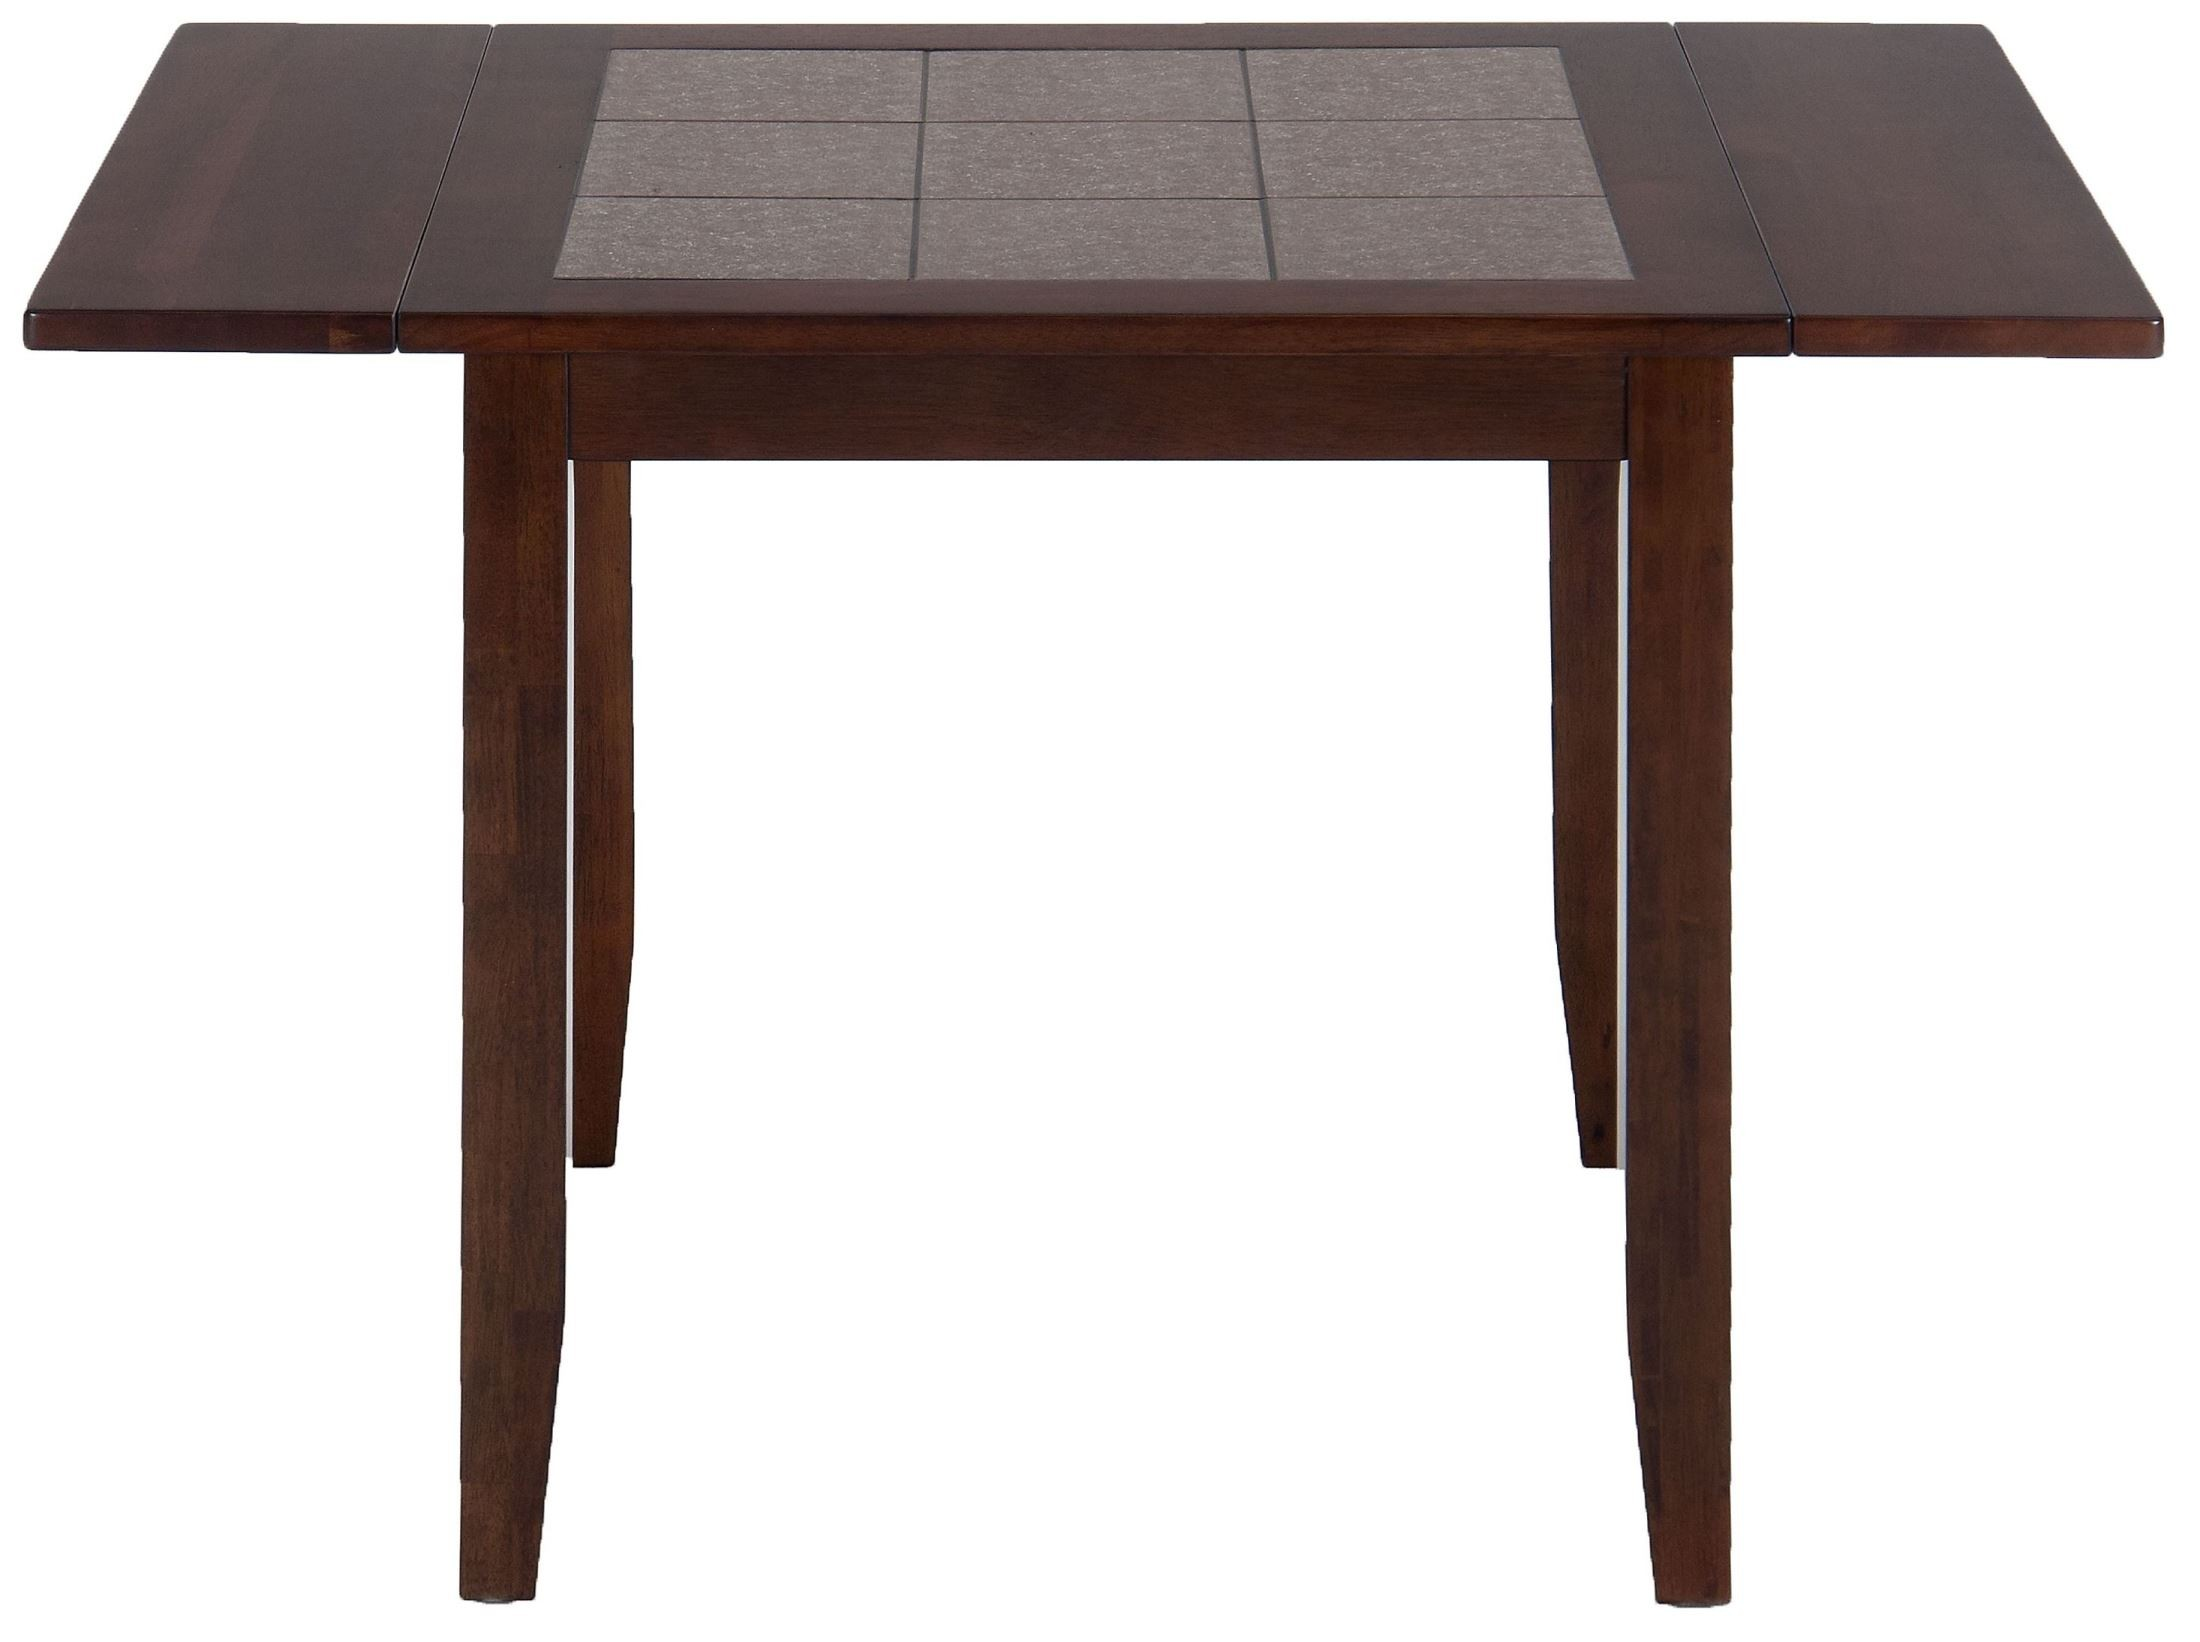 Caleb brown terra tiles drop leaf extendable dining table for Drop leaf dining table